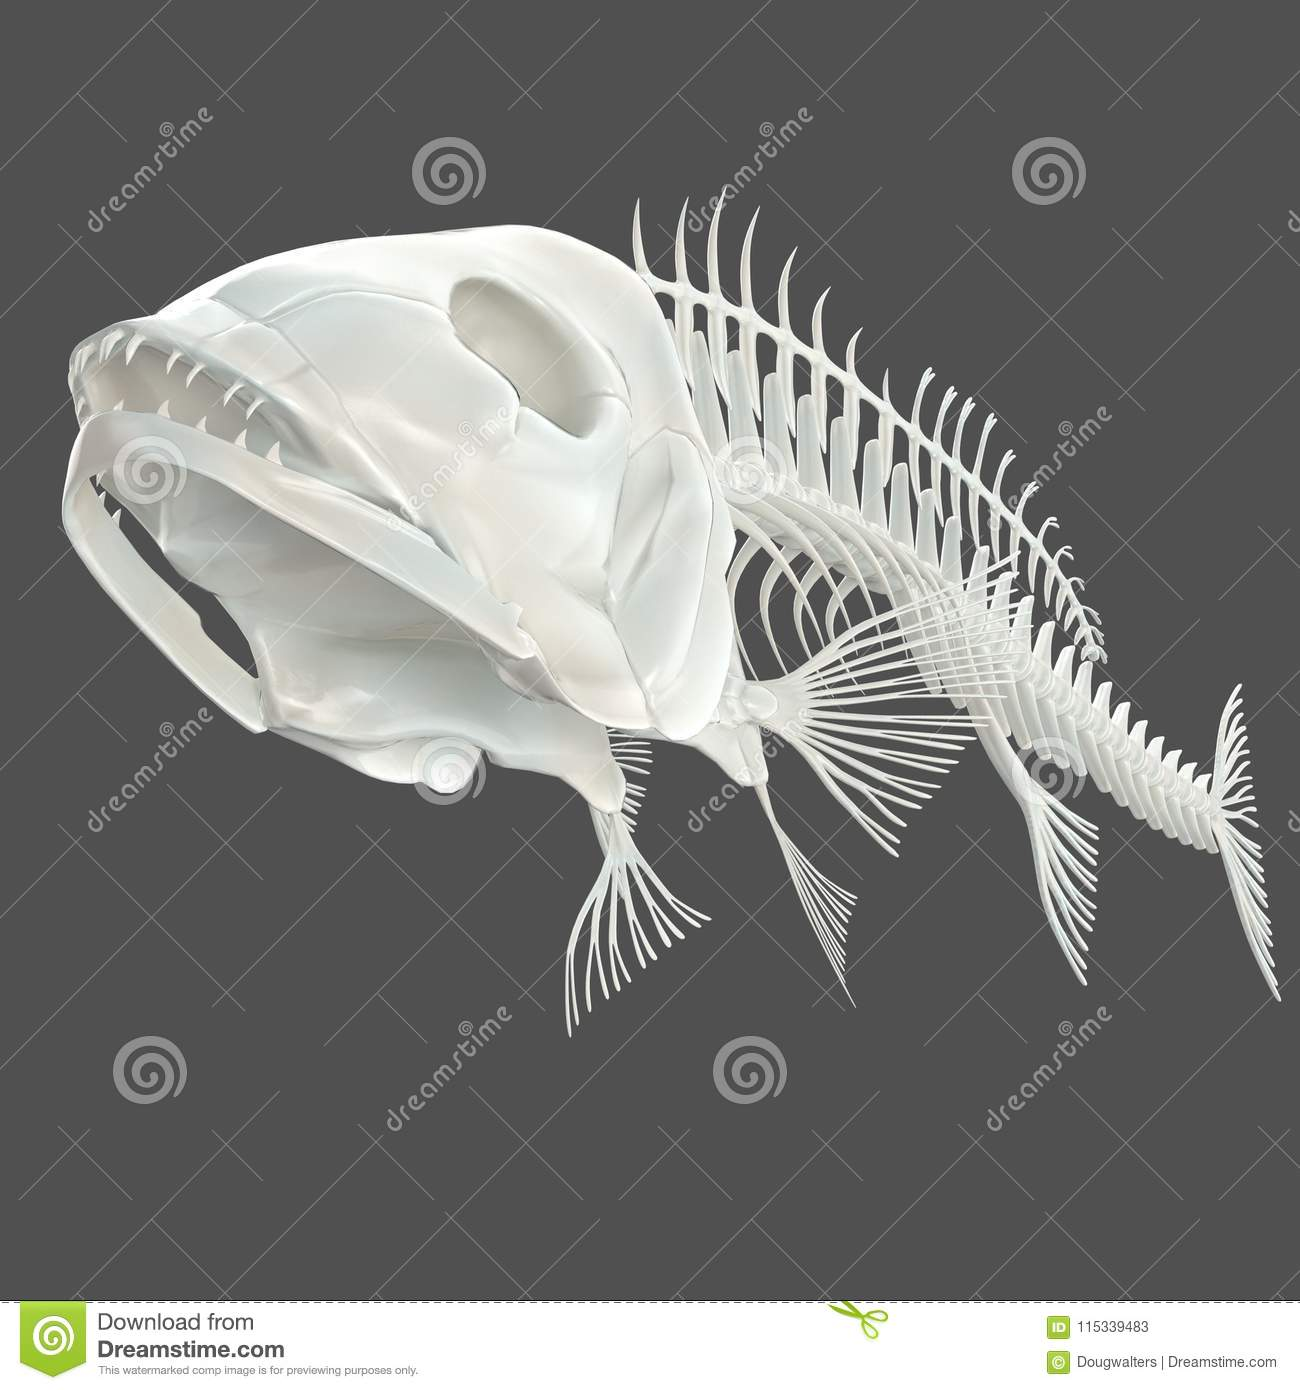 Fish Skeleton Stock Illustrations – 1,747 Fish Skeleton Stock ...